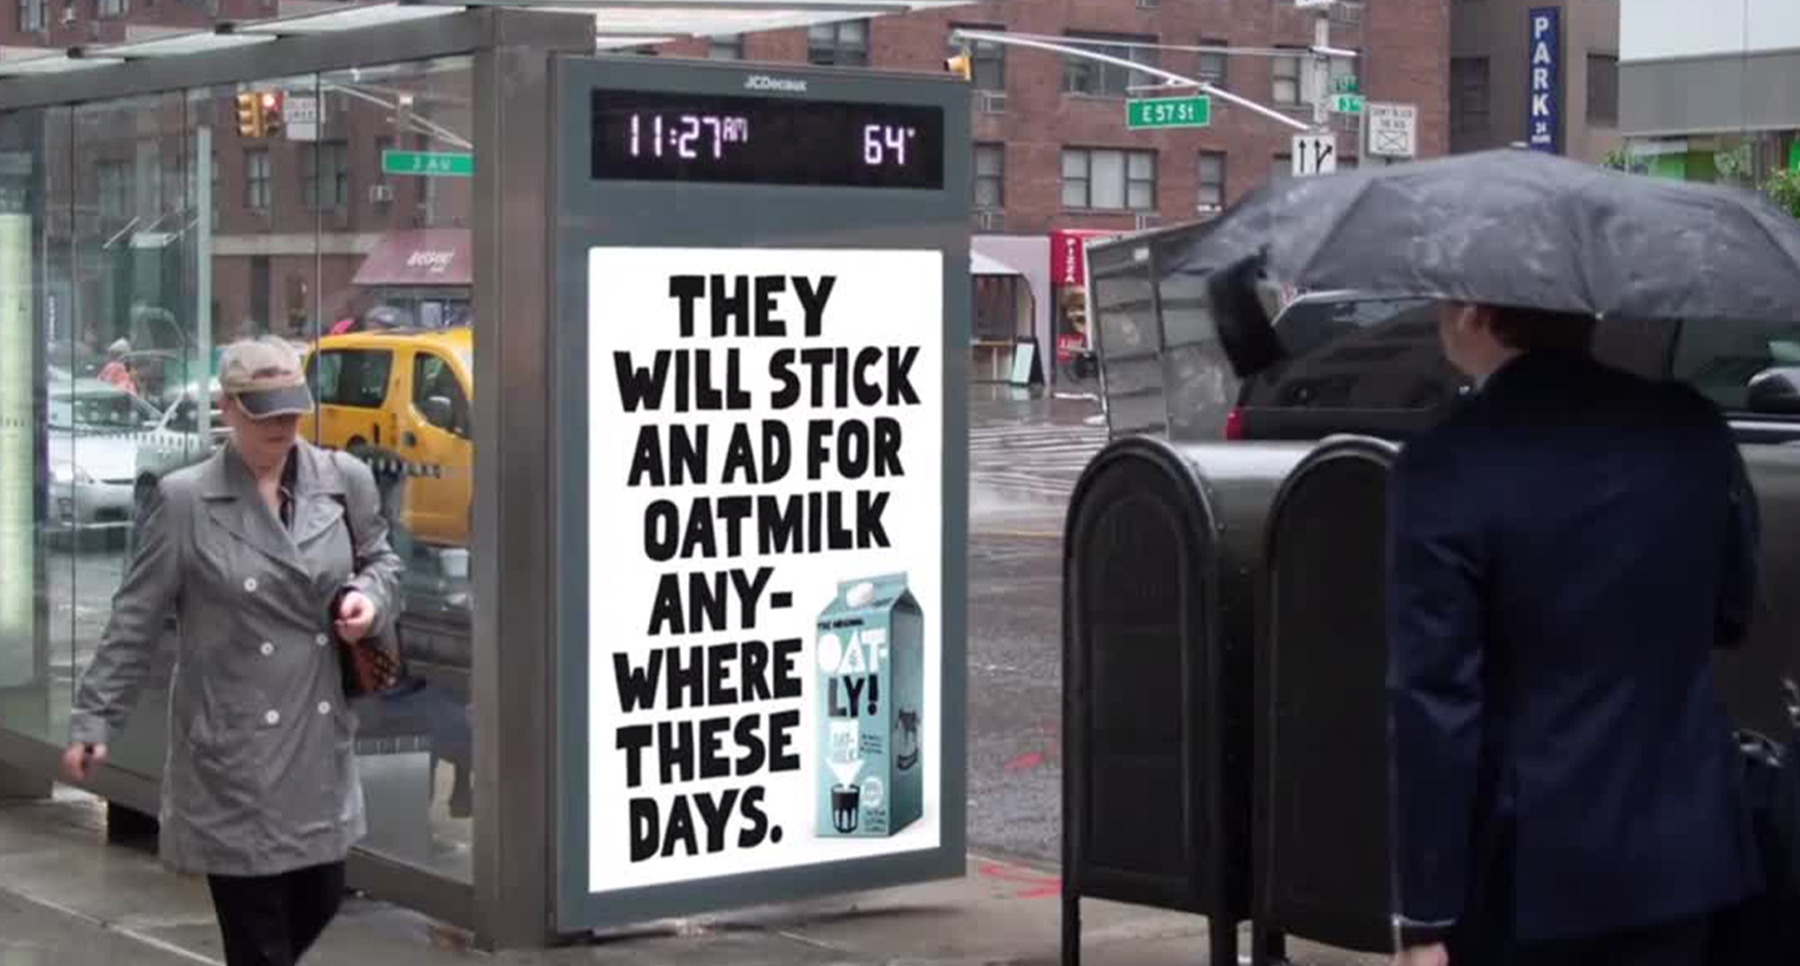 Brand Oatly's advertisement at bus stop